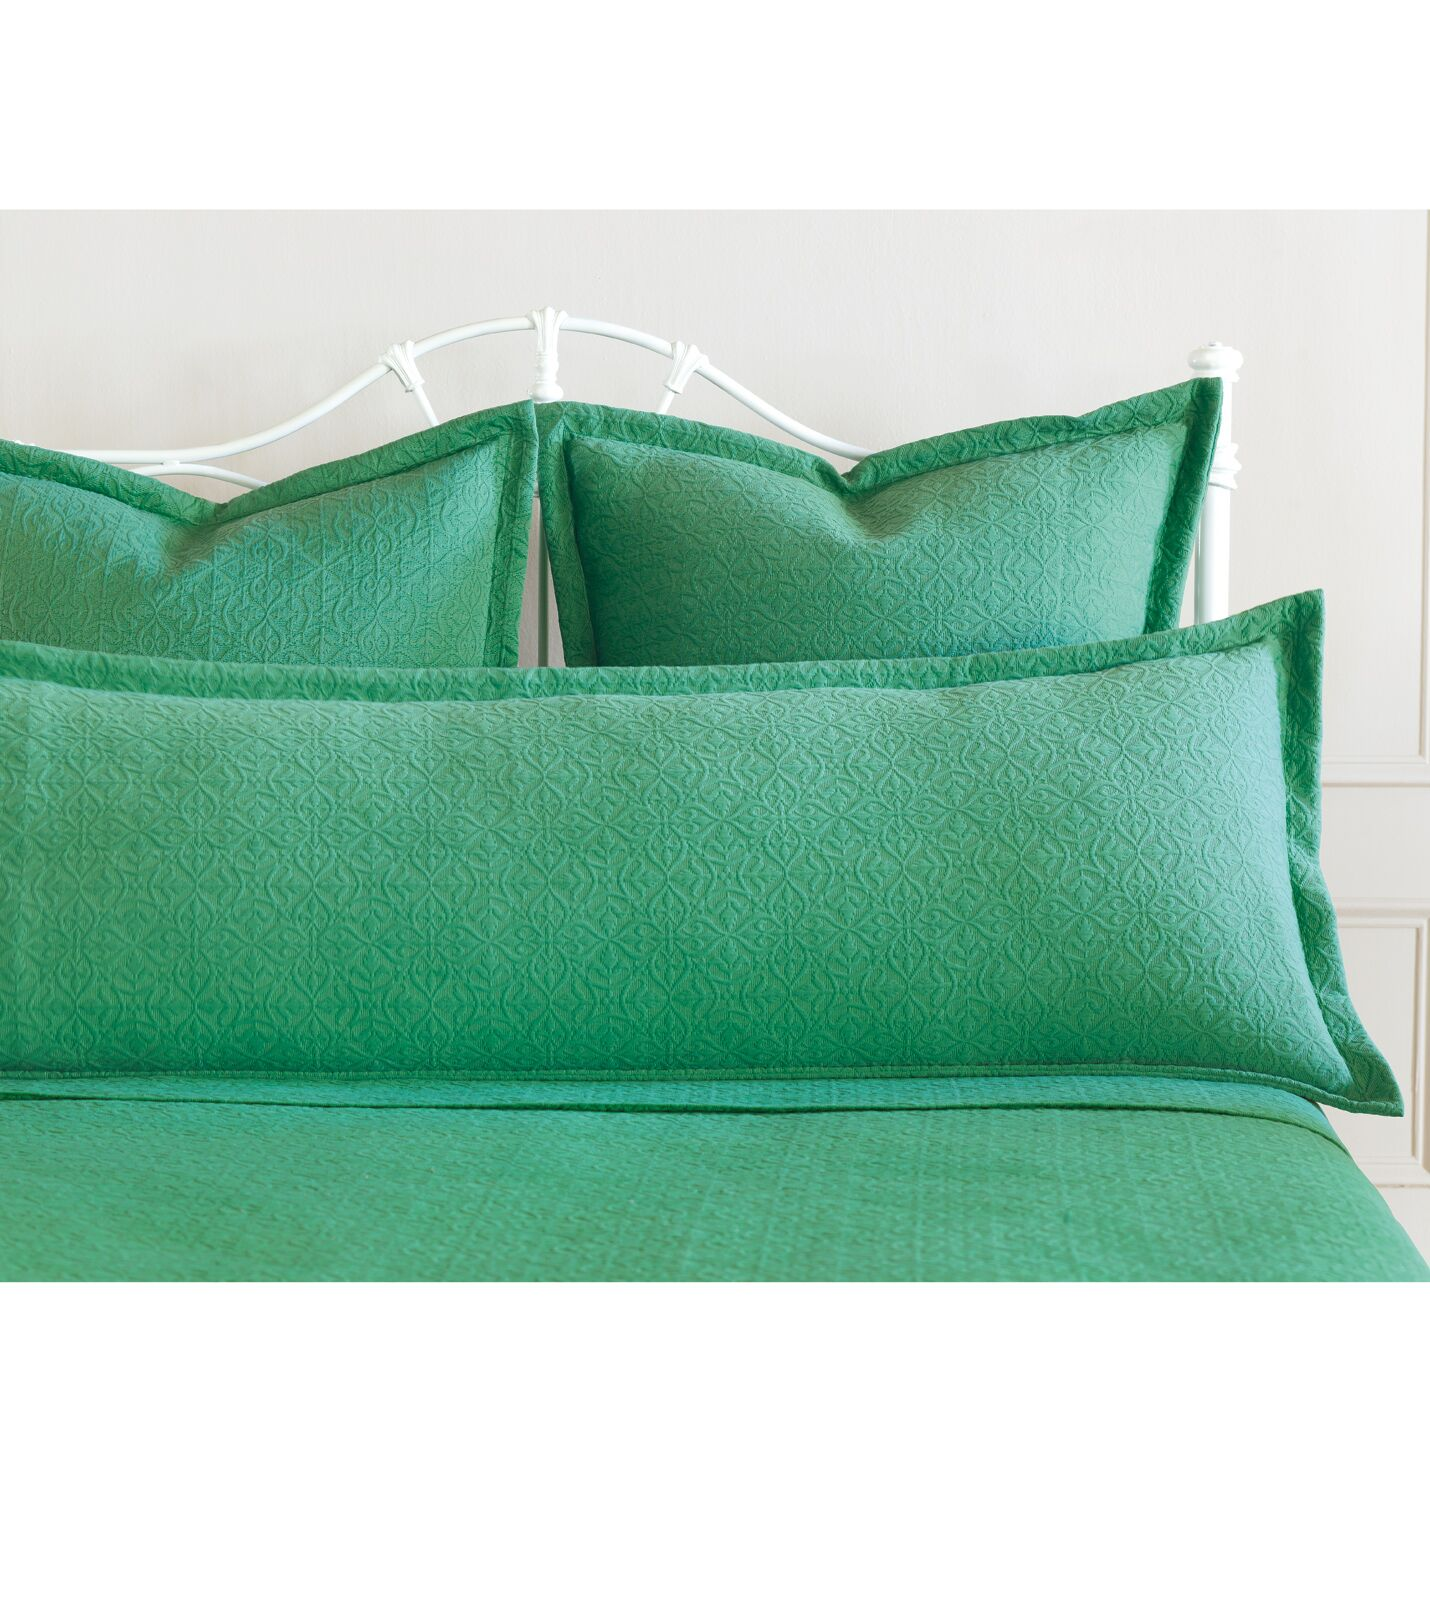 Mea Matelasse Cotton Lumbar Pillow Size: Queen, Color: Meadow